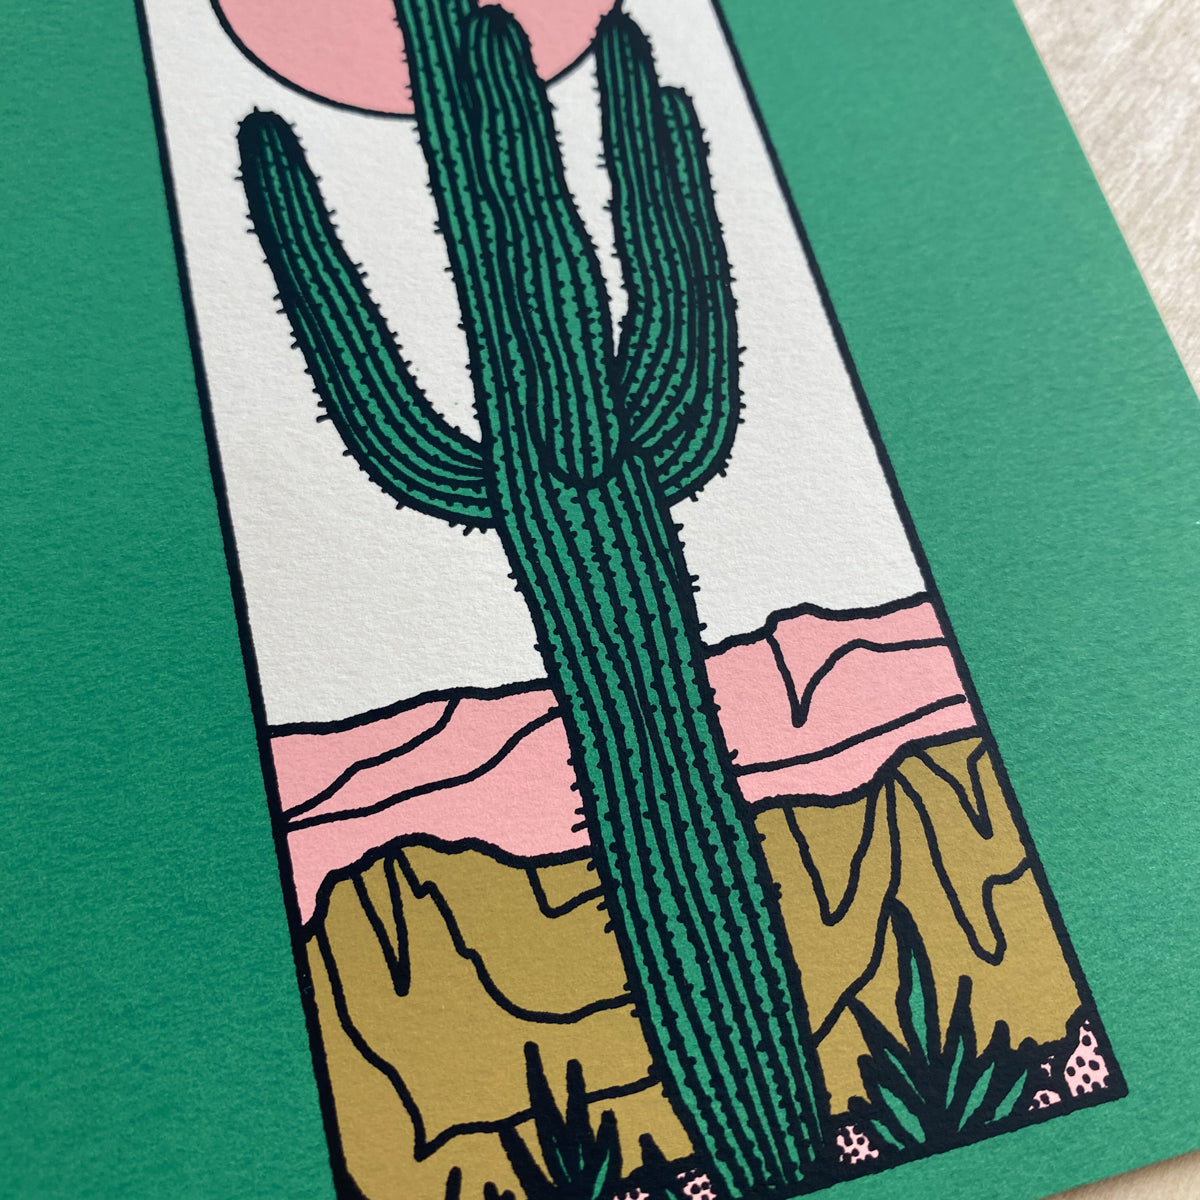 Mesa Arizona - Signed Print #190